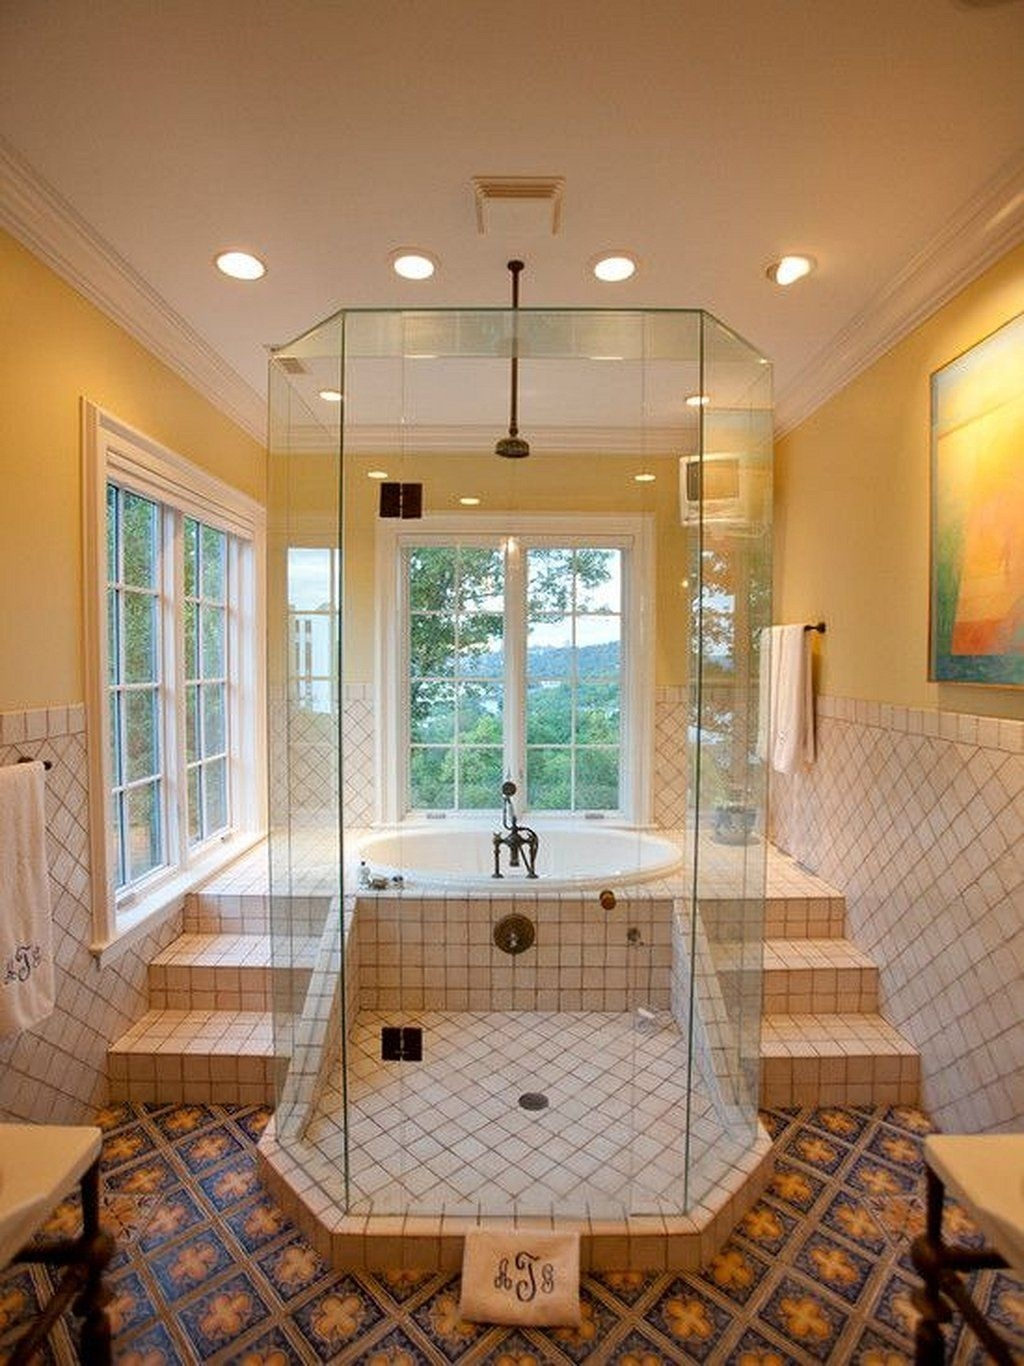 Marvelous Master Bathroom Ideas For Home41